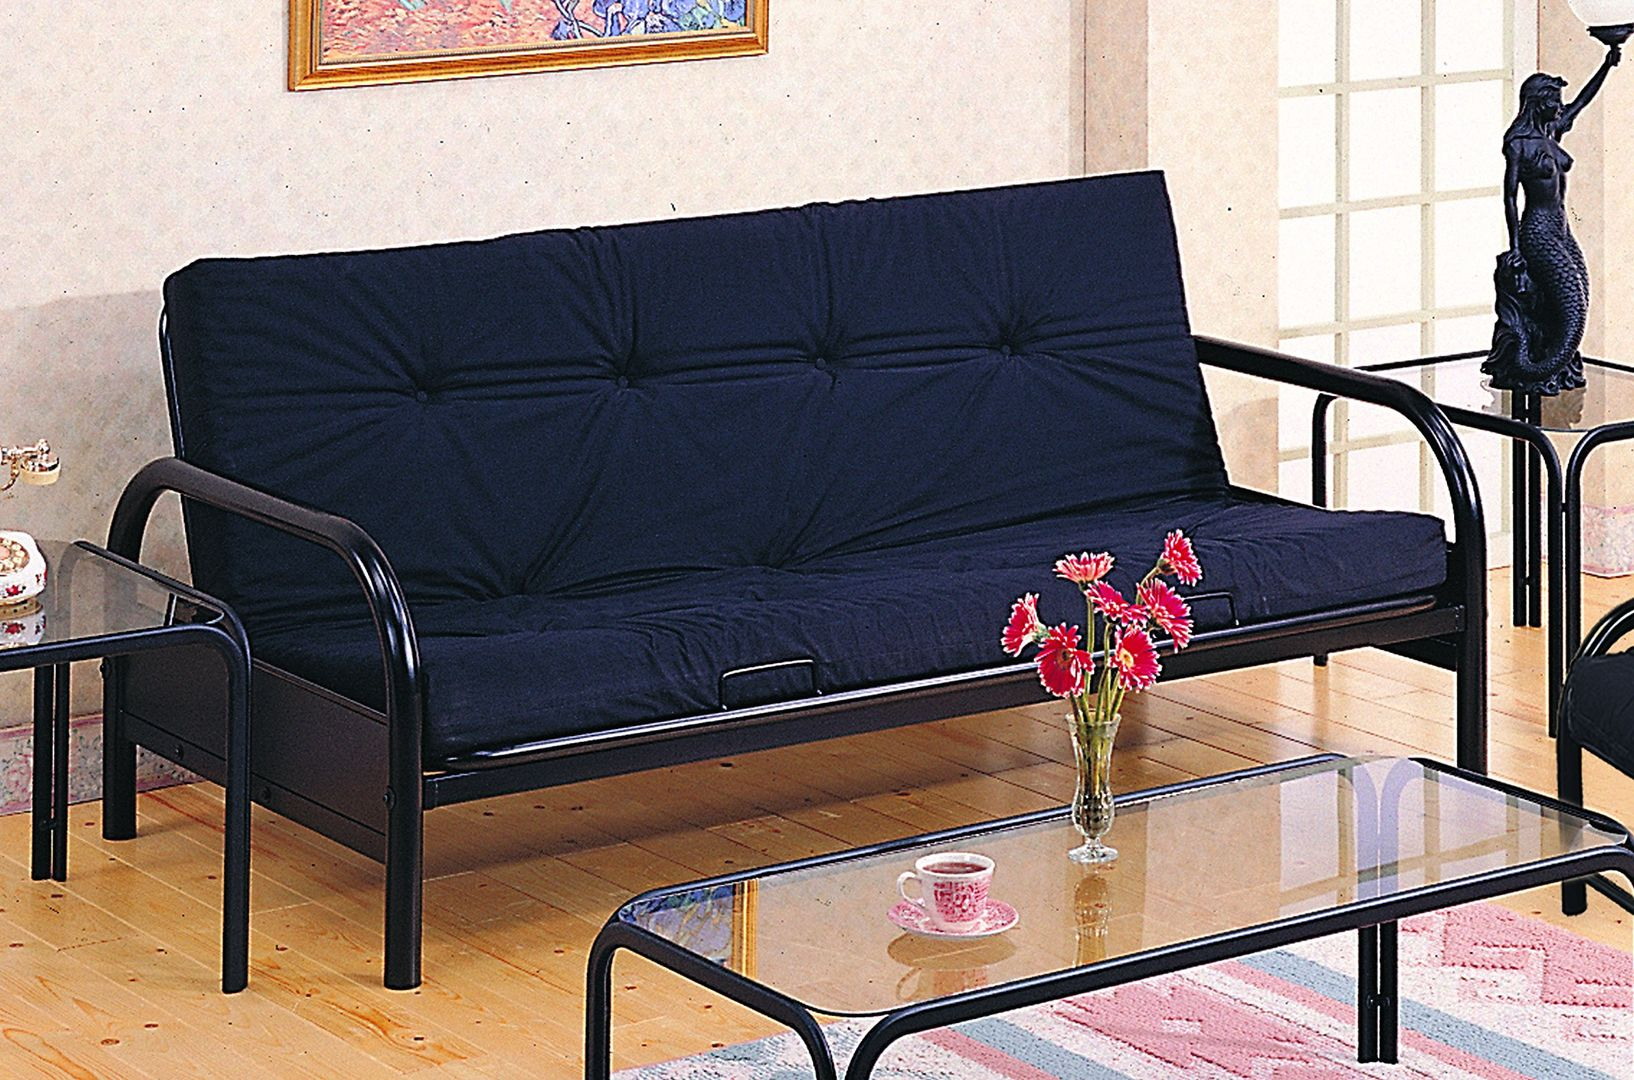 Futon Frame and Accessories In Your Home Outlook